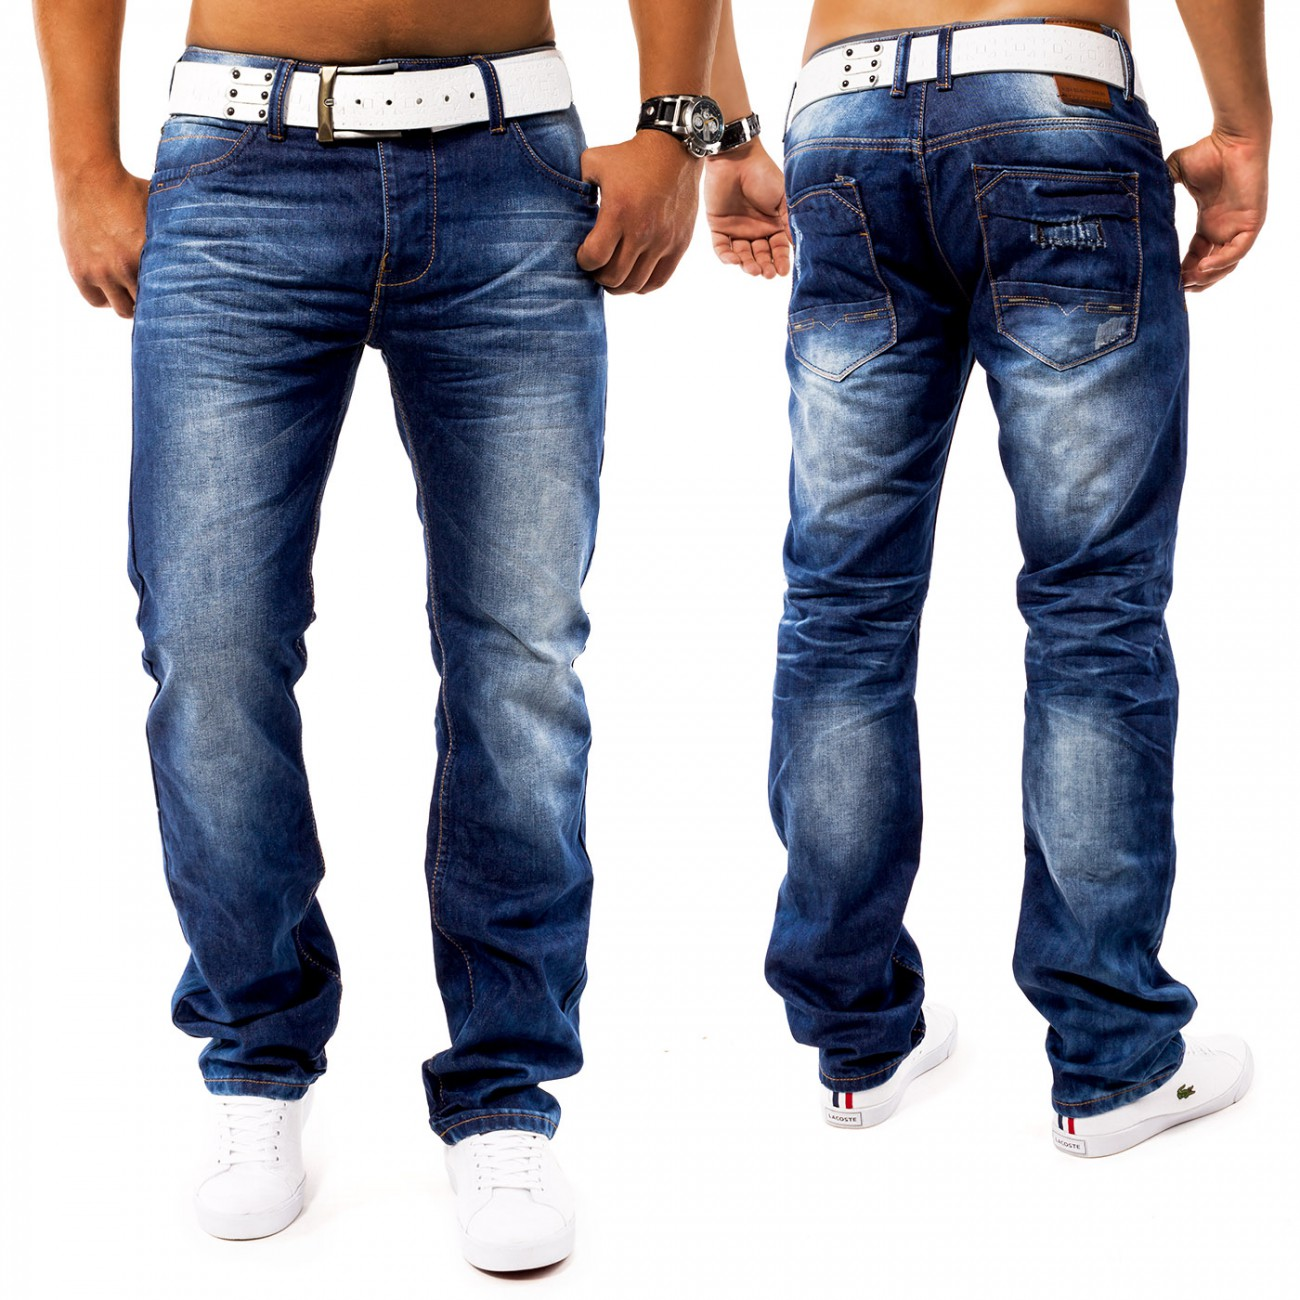 herren marken jeans hose aurora borealis vintage clubwear destroid denim ebay. Black Bedroom Furniture Sets. Home Design Ideas